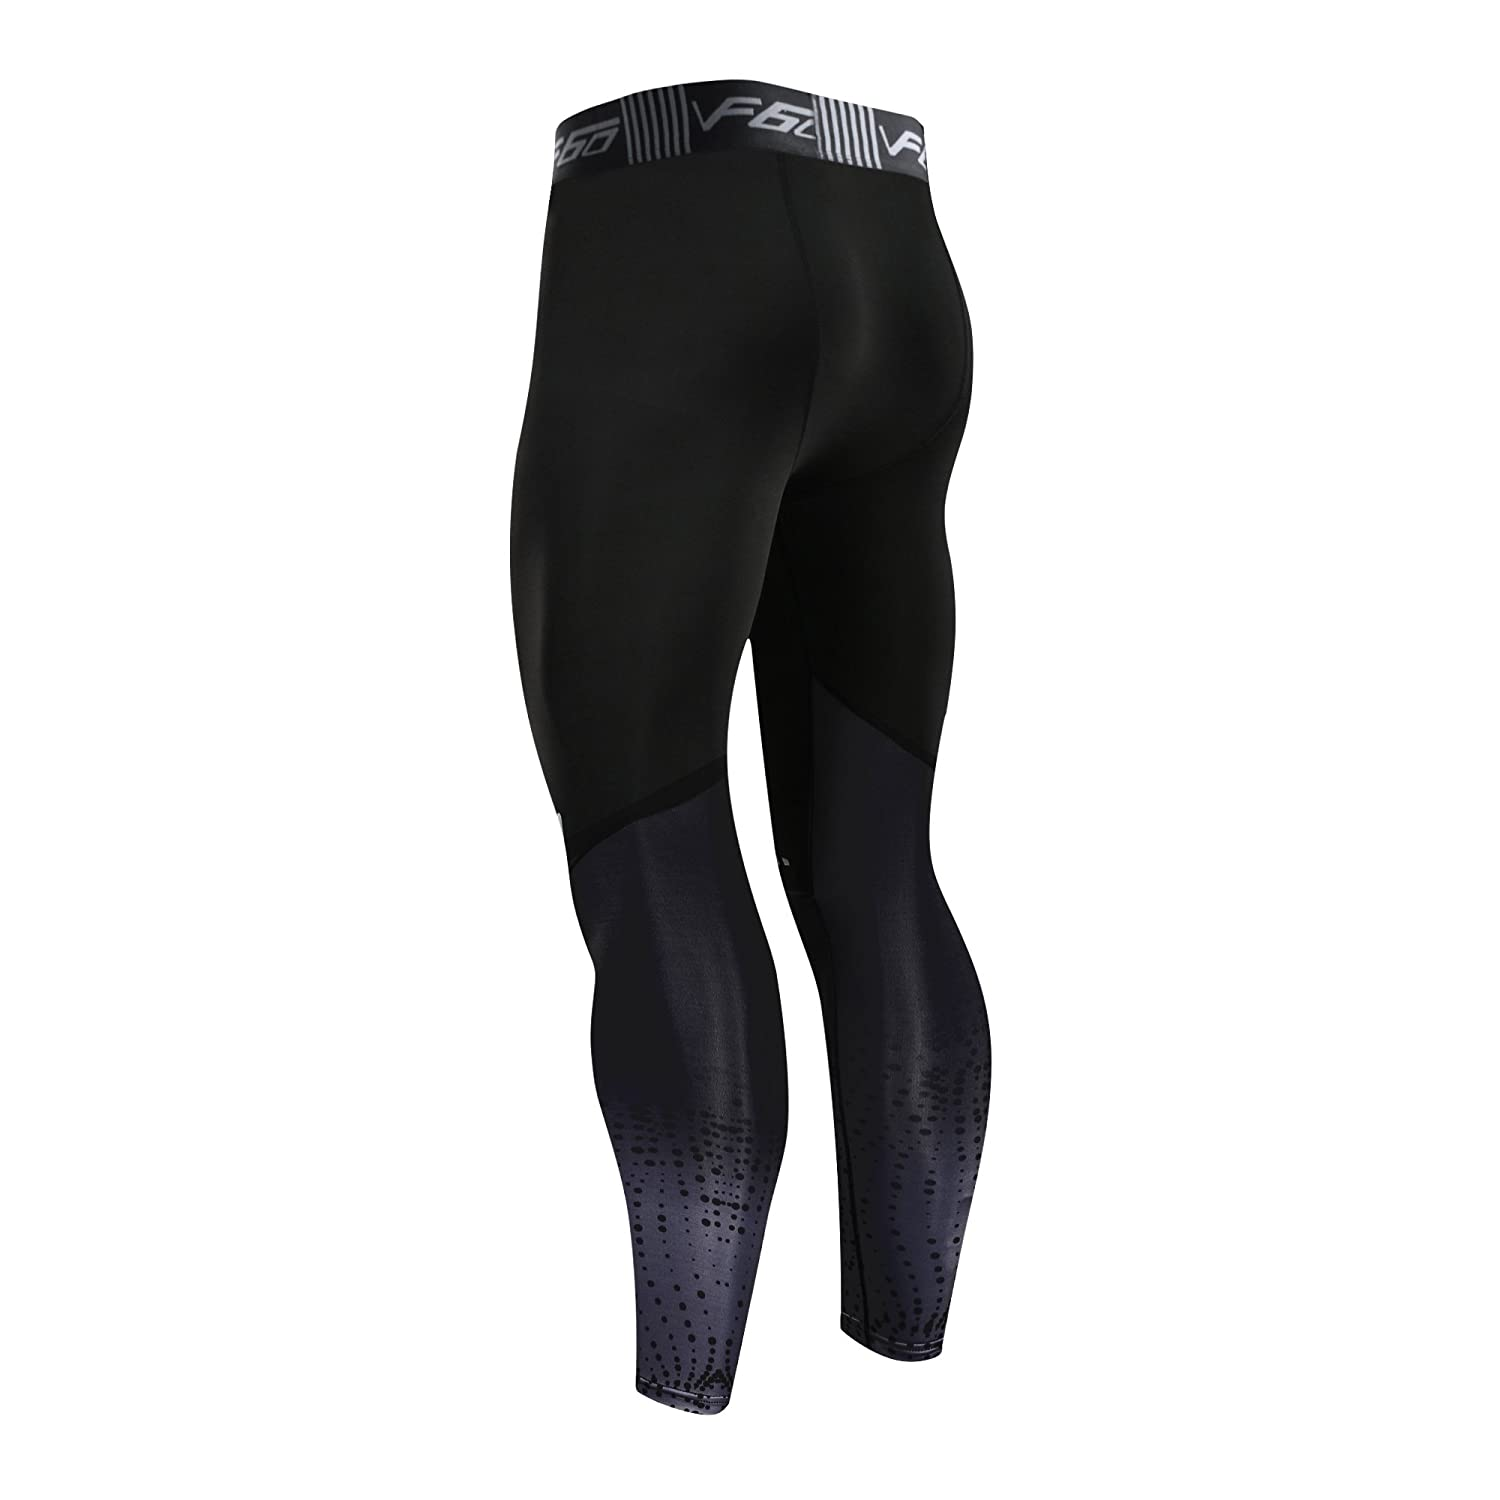 Basketball HURMES Mens Sports Compression Pants Hiking Cool Dry Tights Running Baselayer Workout Leggings for Gym